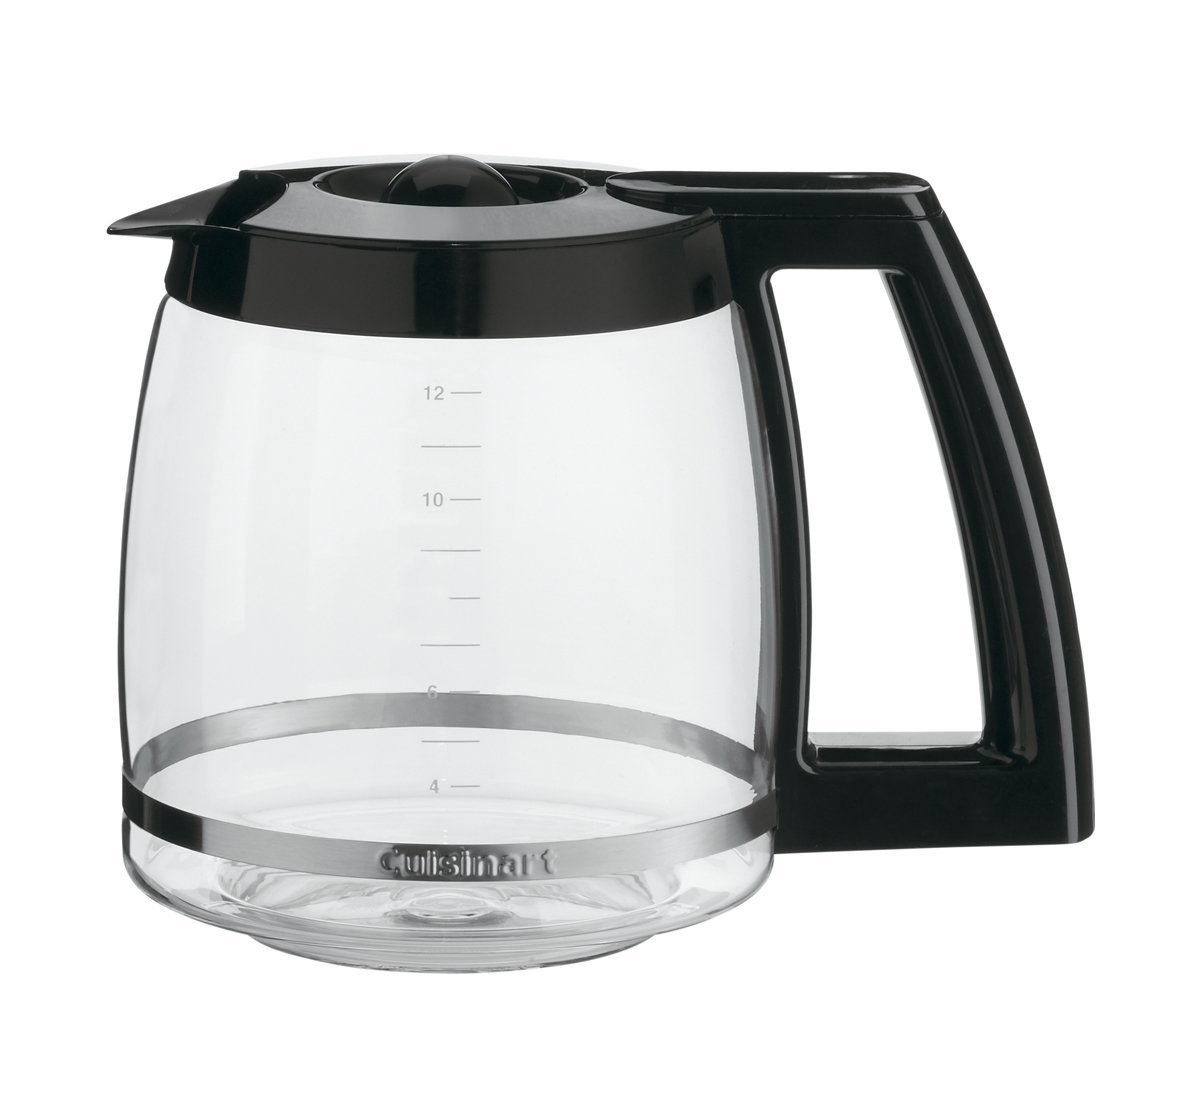 Certified Refurbished Grind-and-Brew 12-Cup Automatic Coffeemaker, Black Chrome (DGB-550BCH)